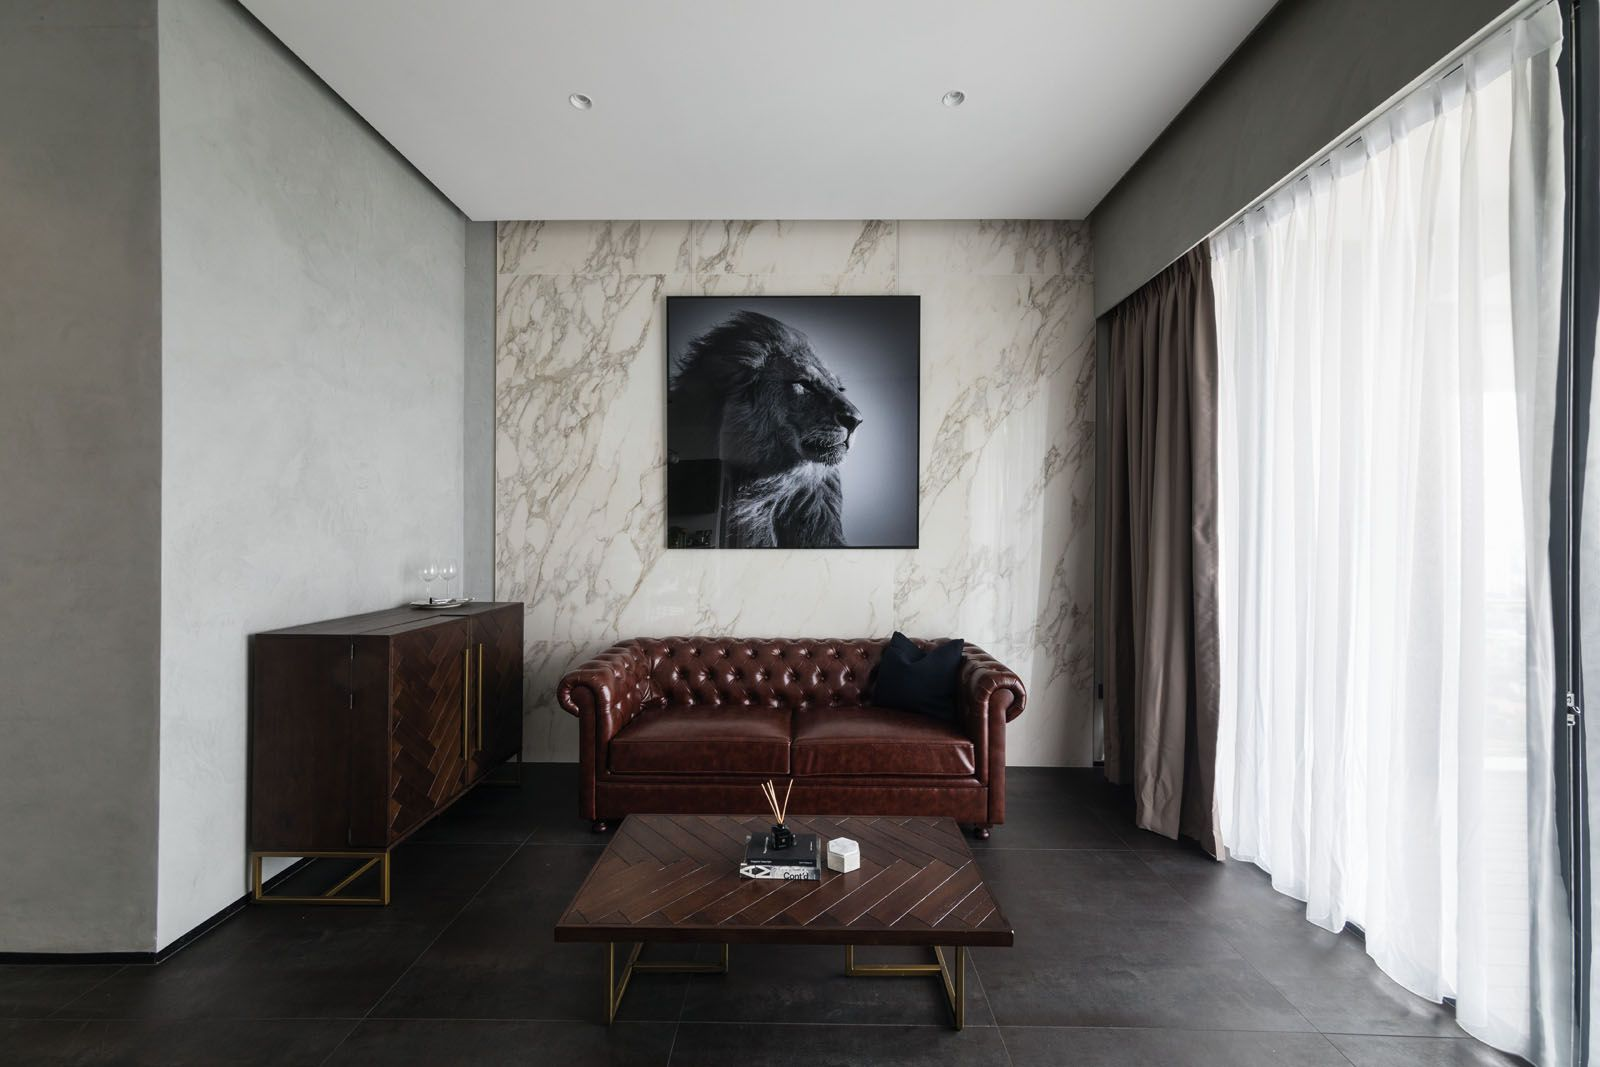 The stucco used for the walls in the living room serves as a neutral background that provides a stylish contrast when paired with leather, timber and marble